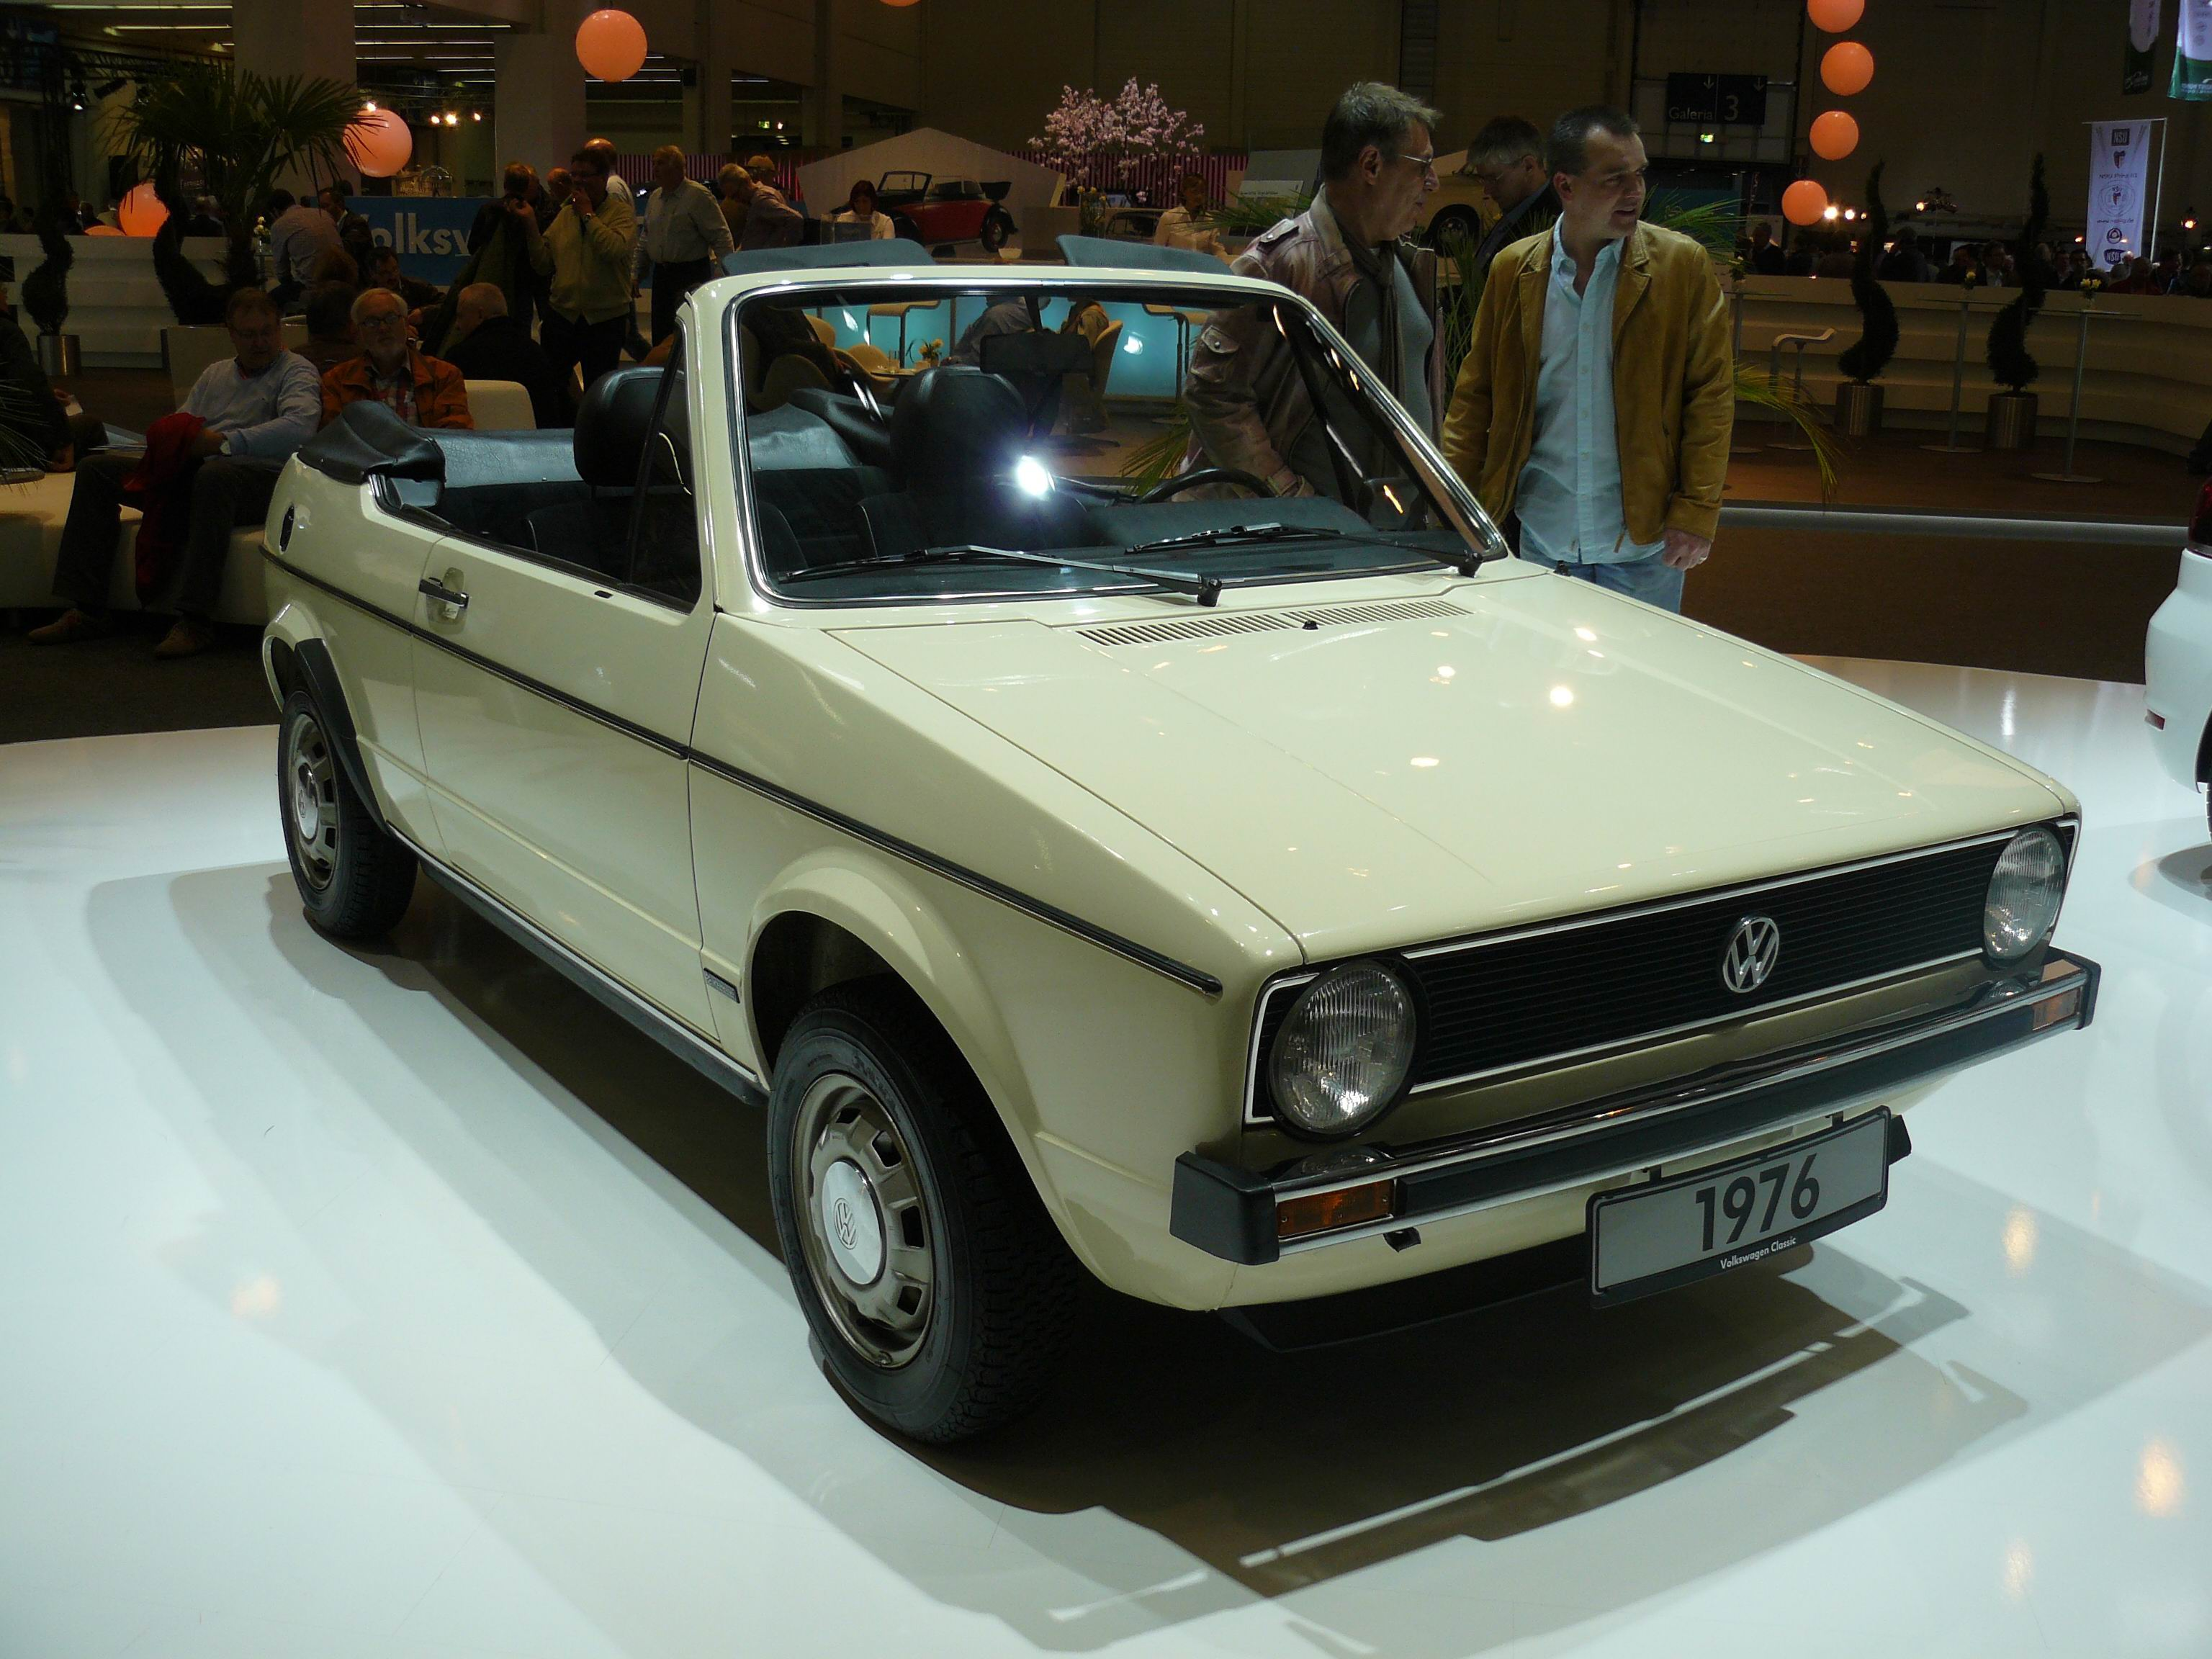 file volkswagen golf 1 cabriolet prototype 1976 vue avant jpg wikimedia commons. Black Bedroom Furniture Sets. Home Design Ideas